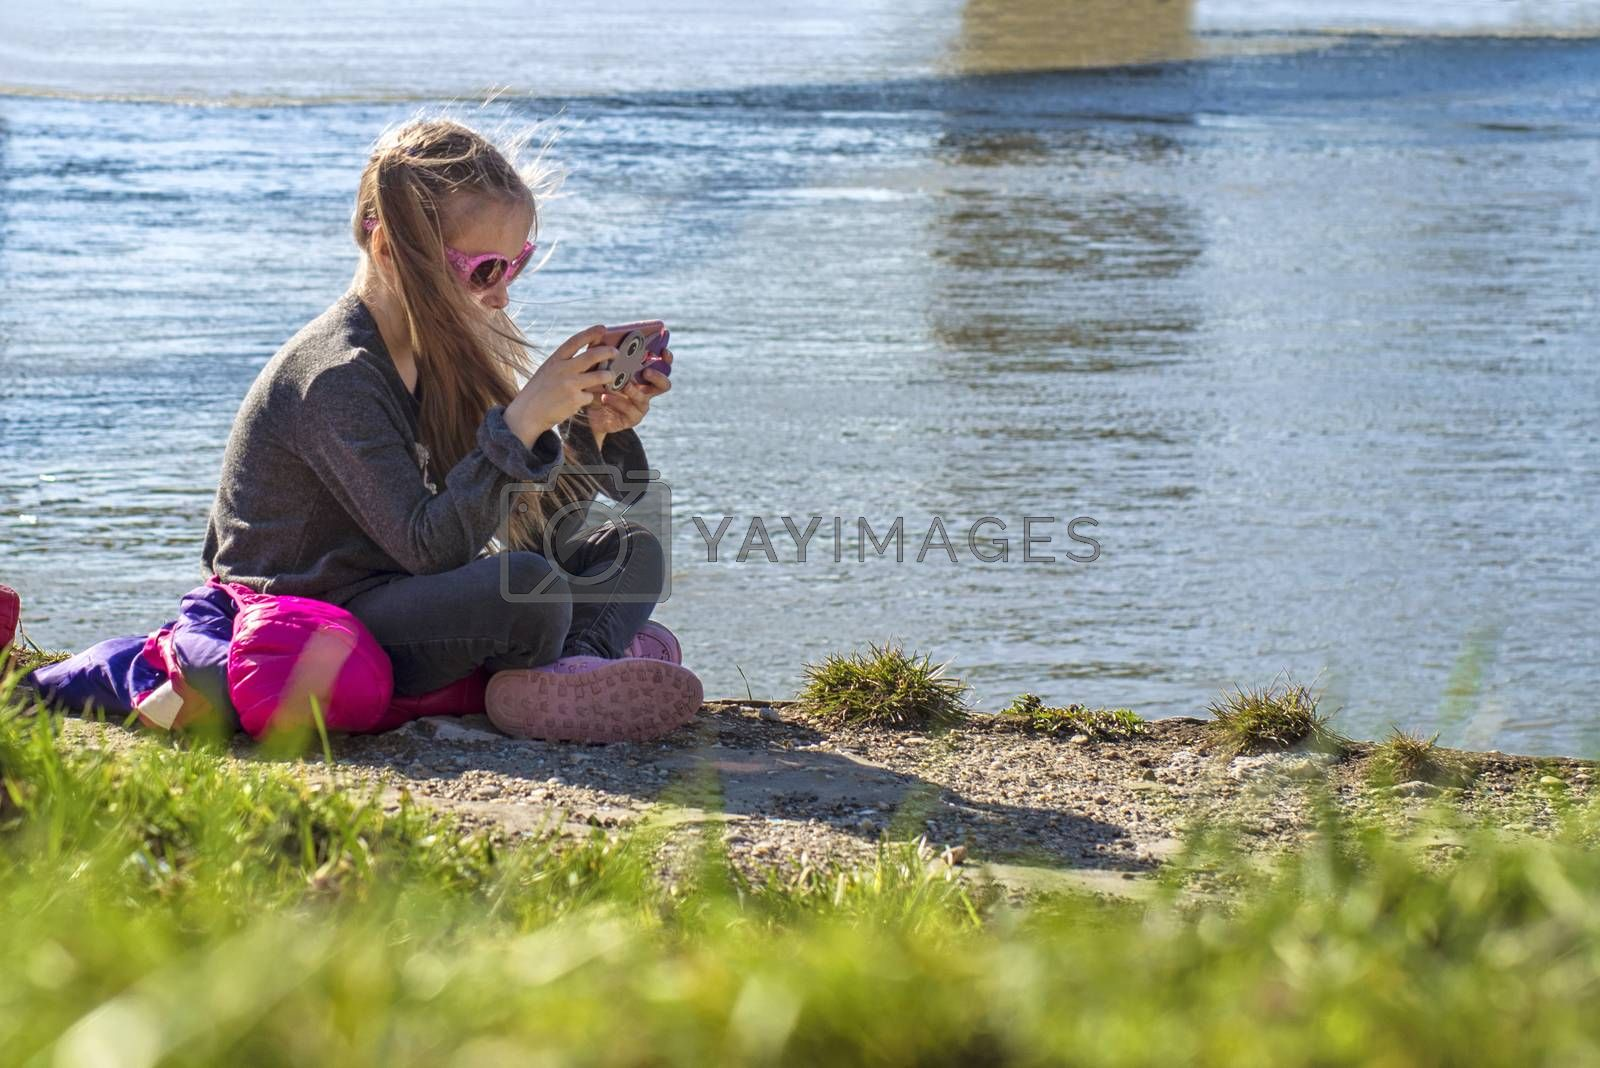 A little girl is sitting on the bank of the river with a telephone.